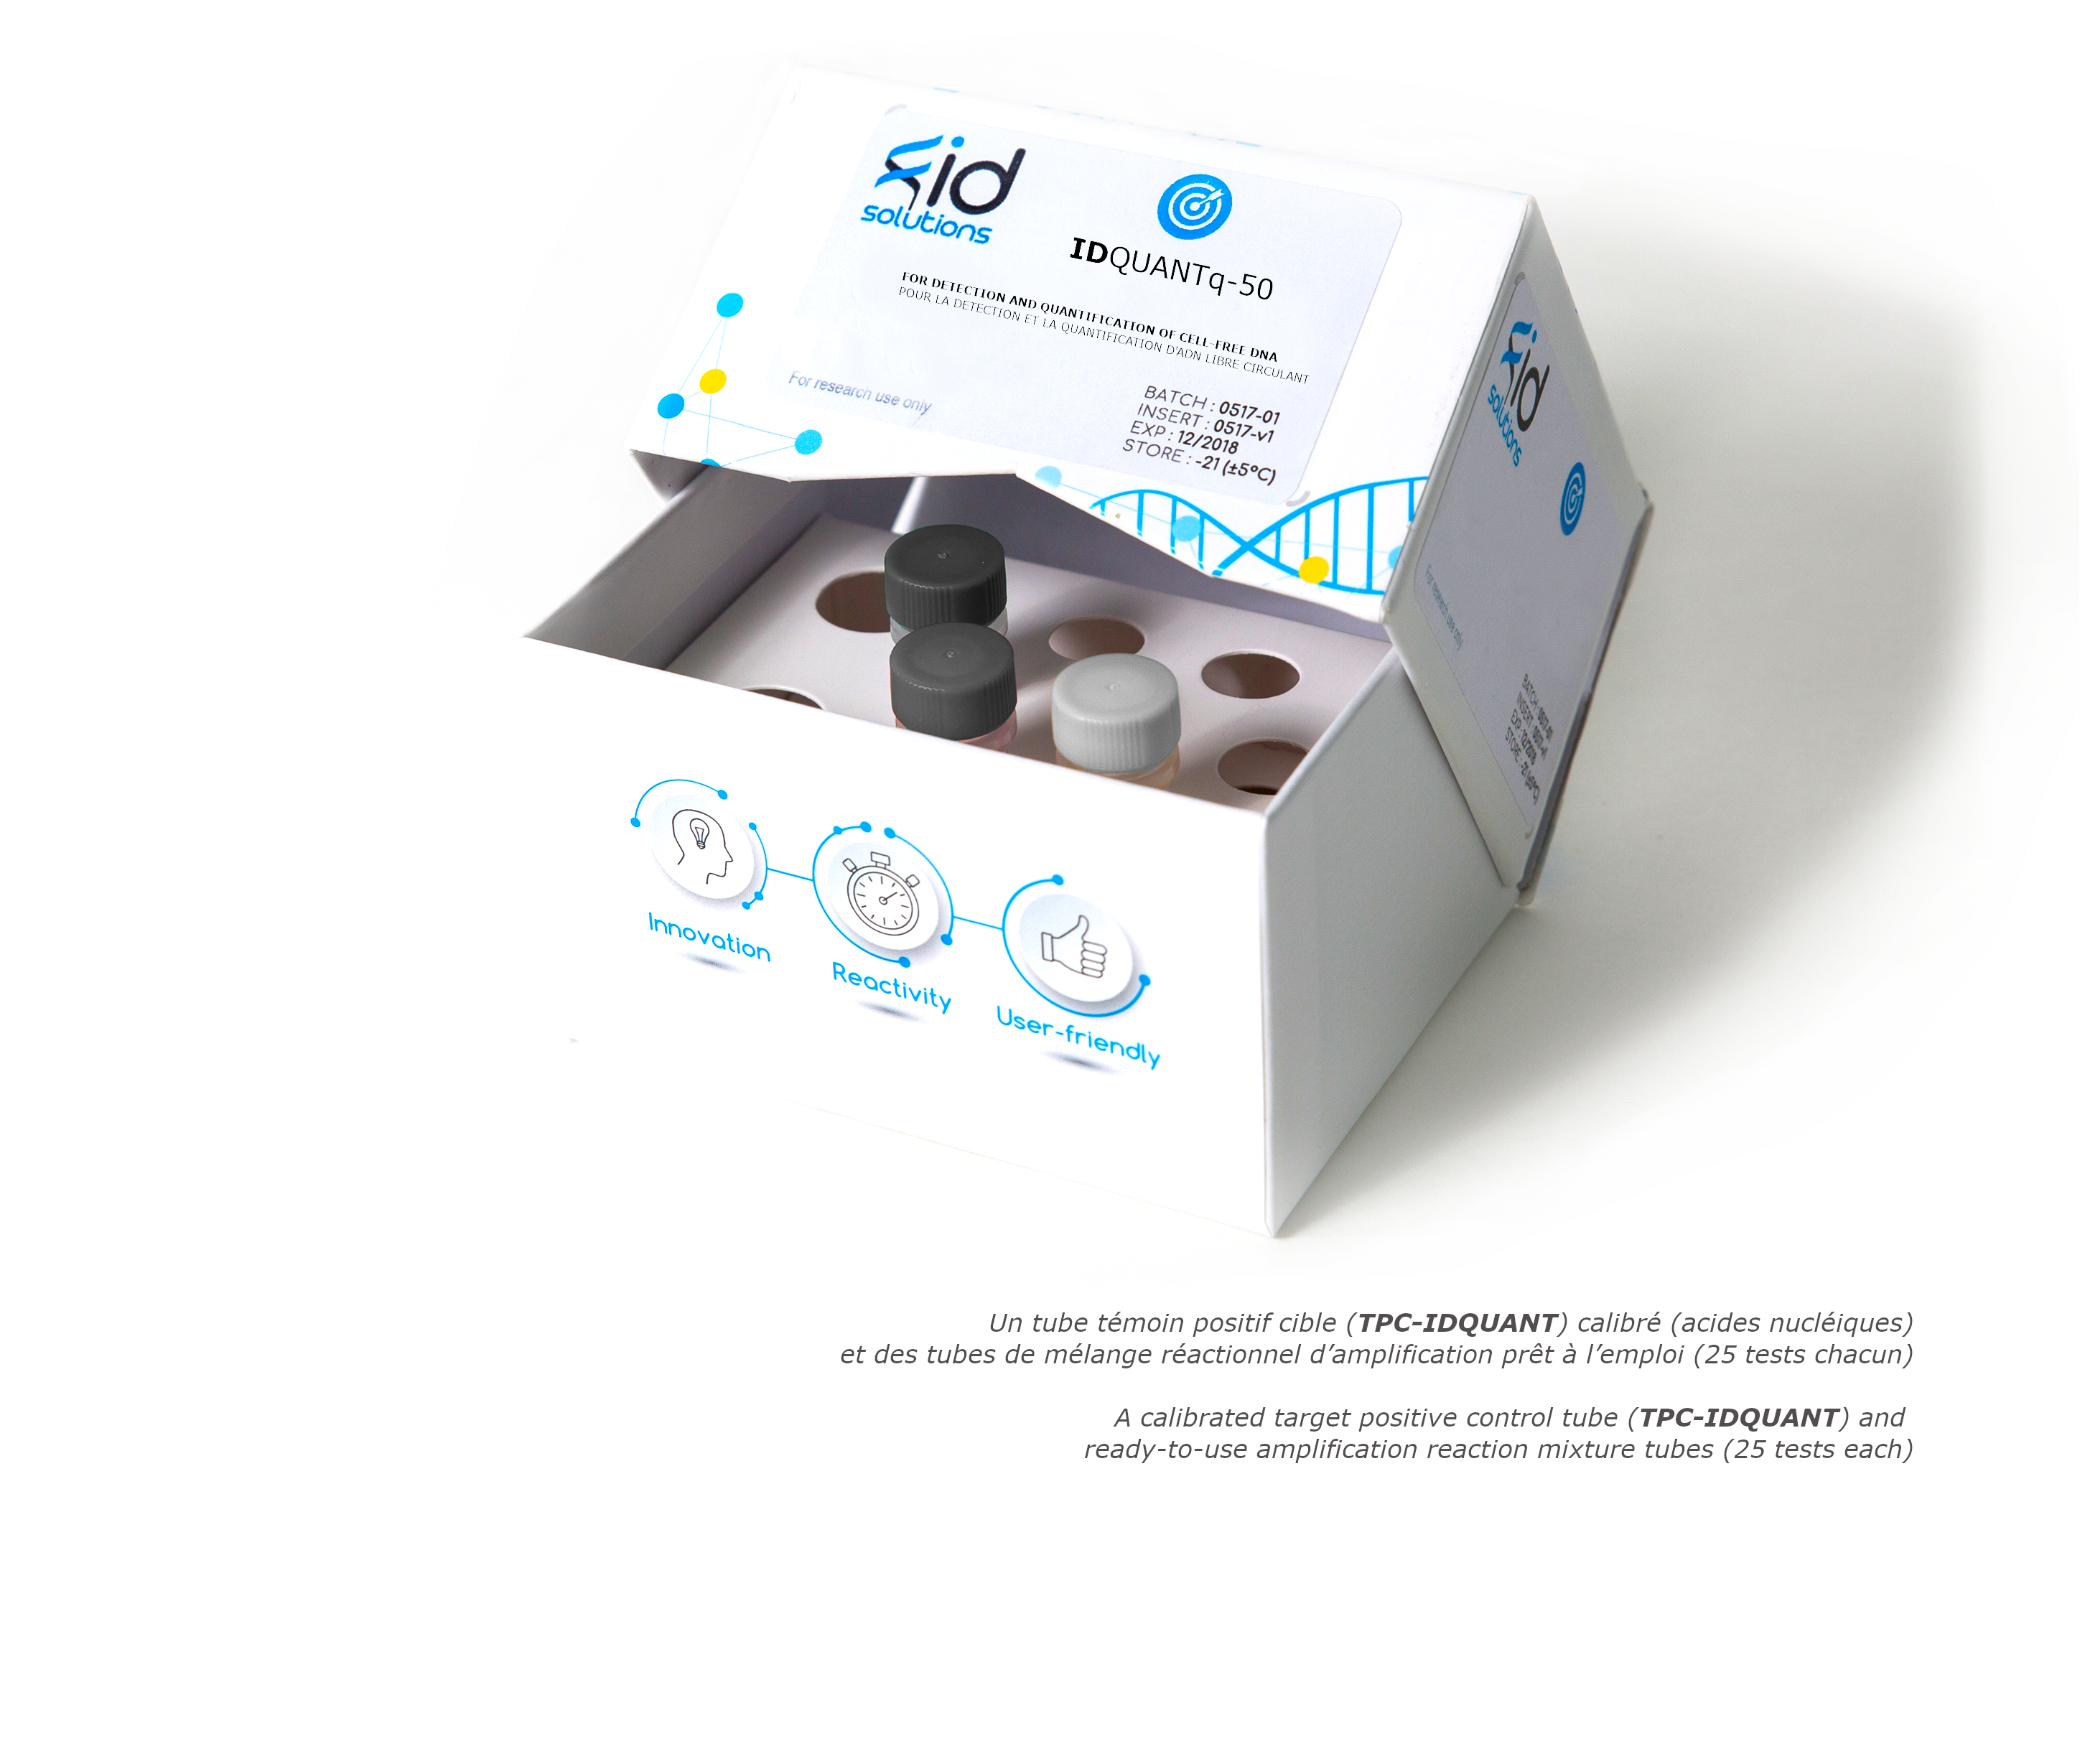 IDQUANTq - circulating cell-free DNA cfDNA detection and quantification Kit using qPCR